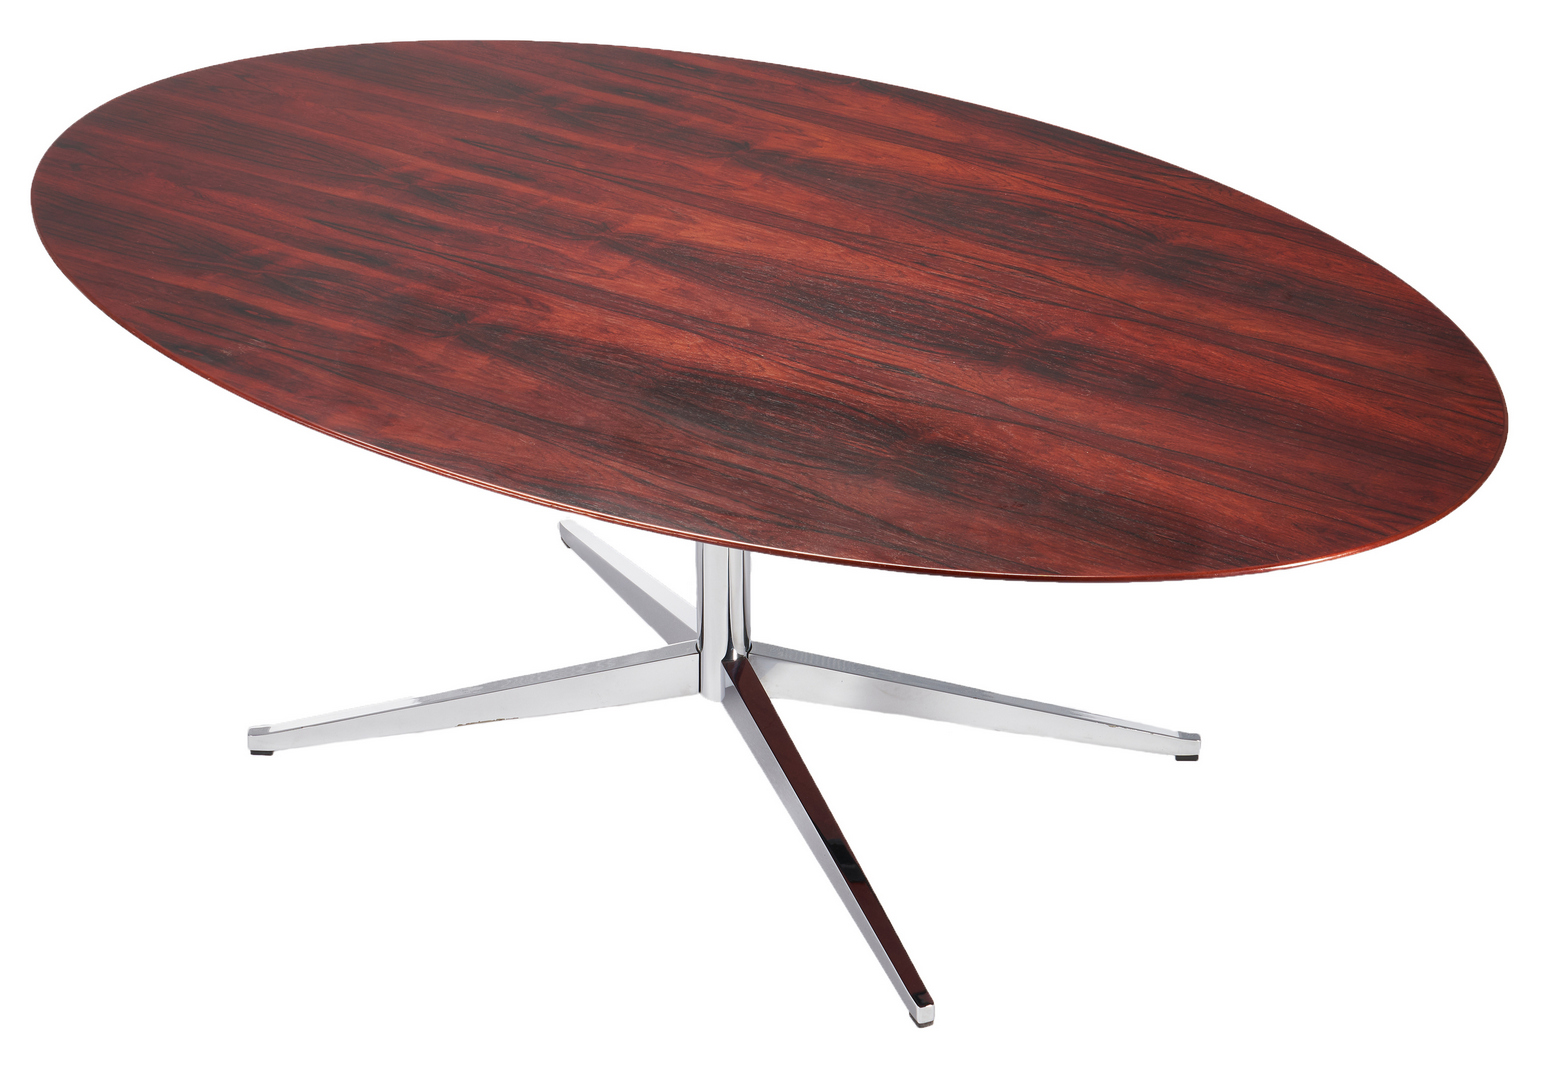 Lot 597: Mid-Century Florence Knoll Oval Table Desk